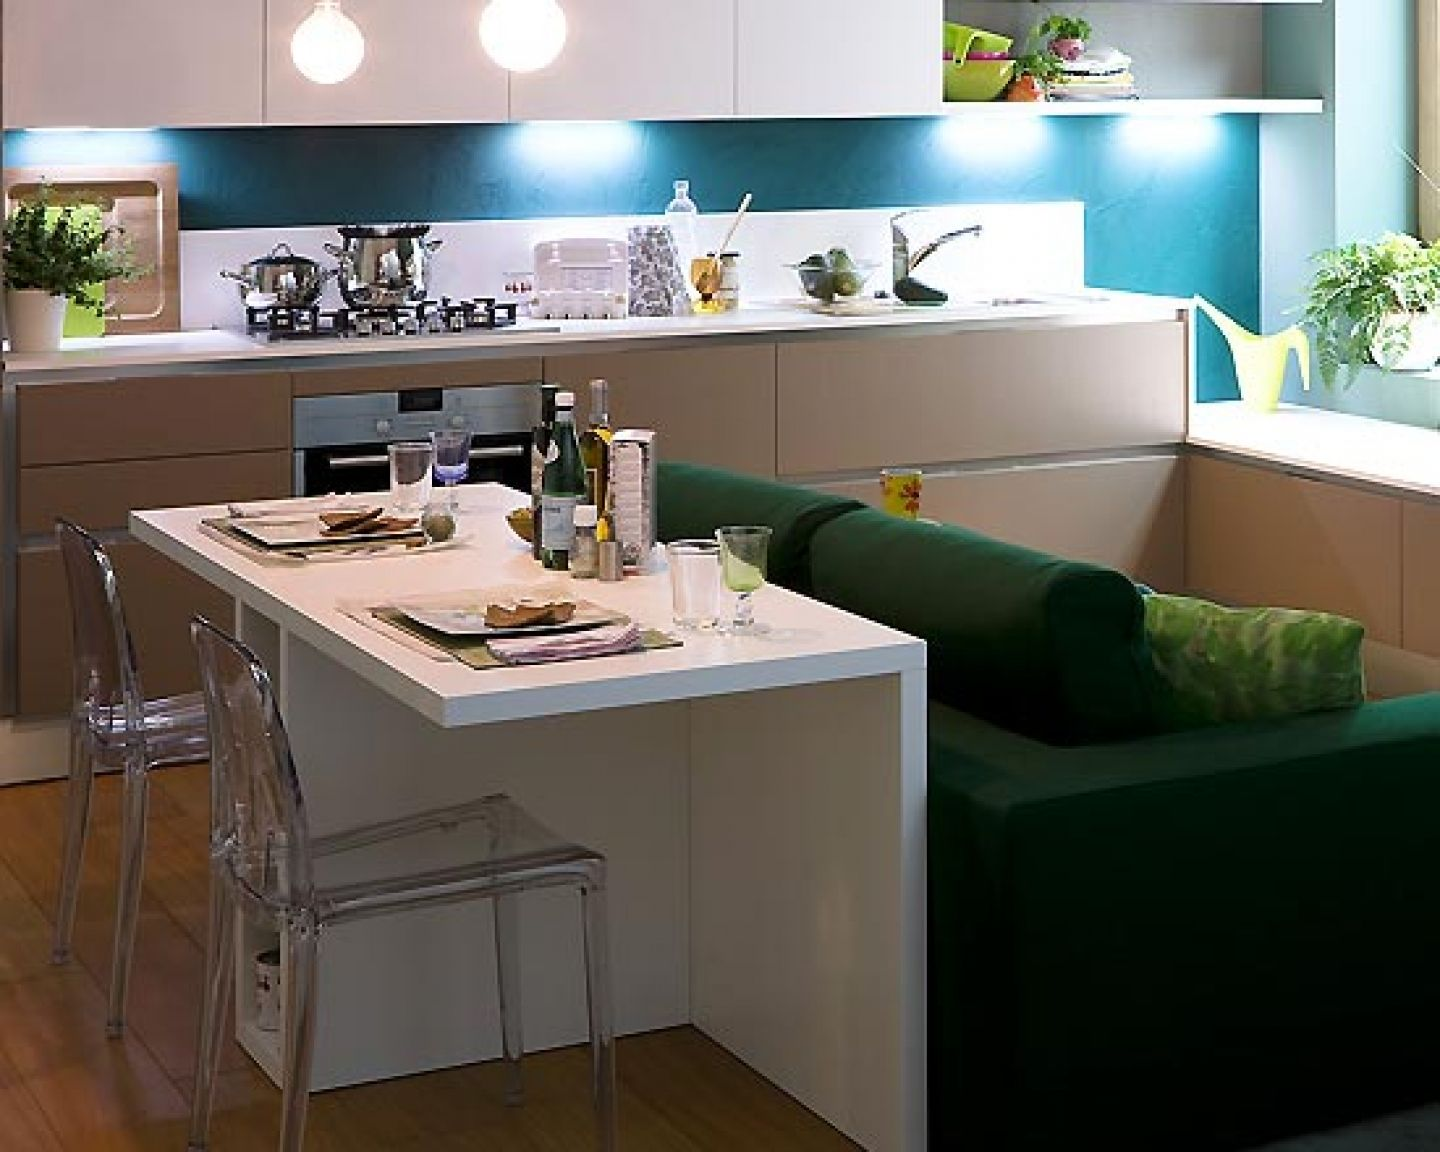 Interior Design for Very Small Houses | Kitchen small dining room small kitchen design very small kitchen